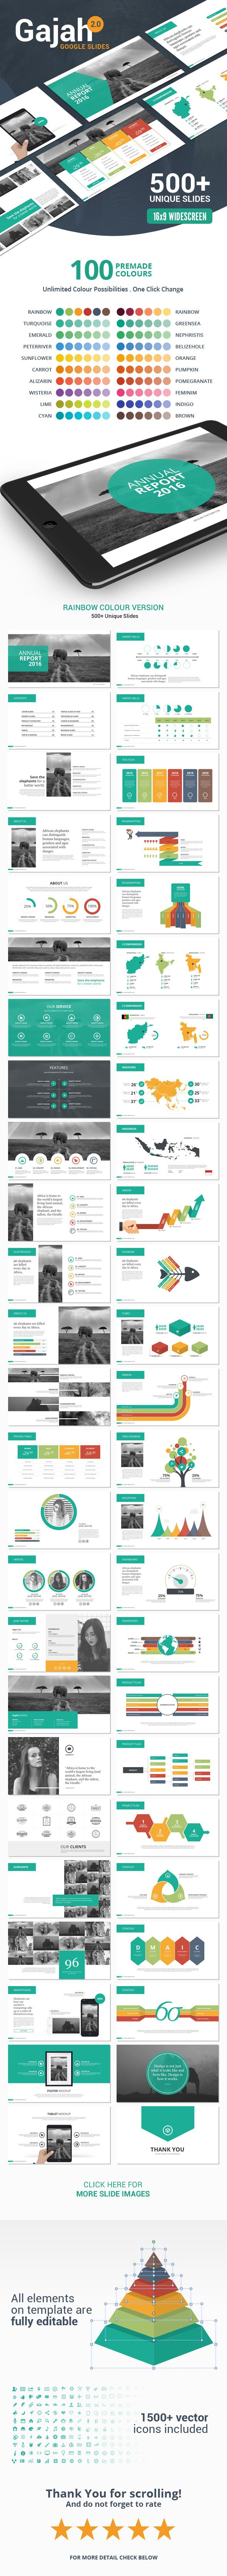 Gajah is a powerful and modern presentation template contains 500 total unique slides with custom and clean design for multipurpose presentation business or personal use, such a creative industry, technology, finance, etc. All elements are editable from a shape to colour no need another software to edit it, all presentations include an animated slide and transitions.